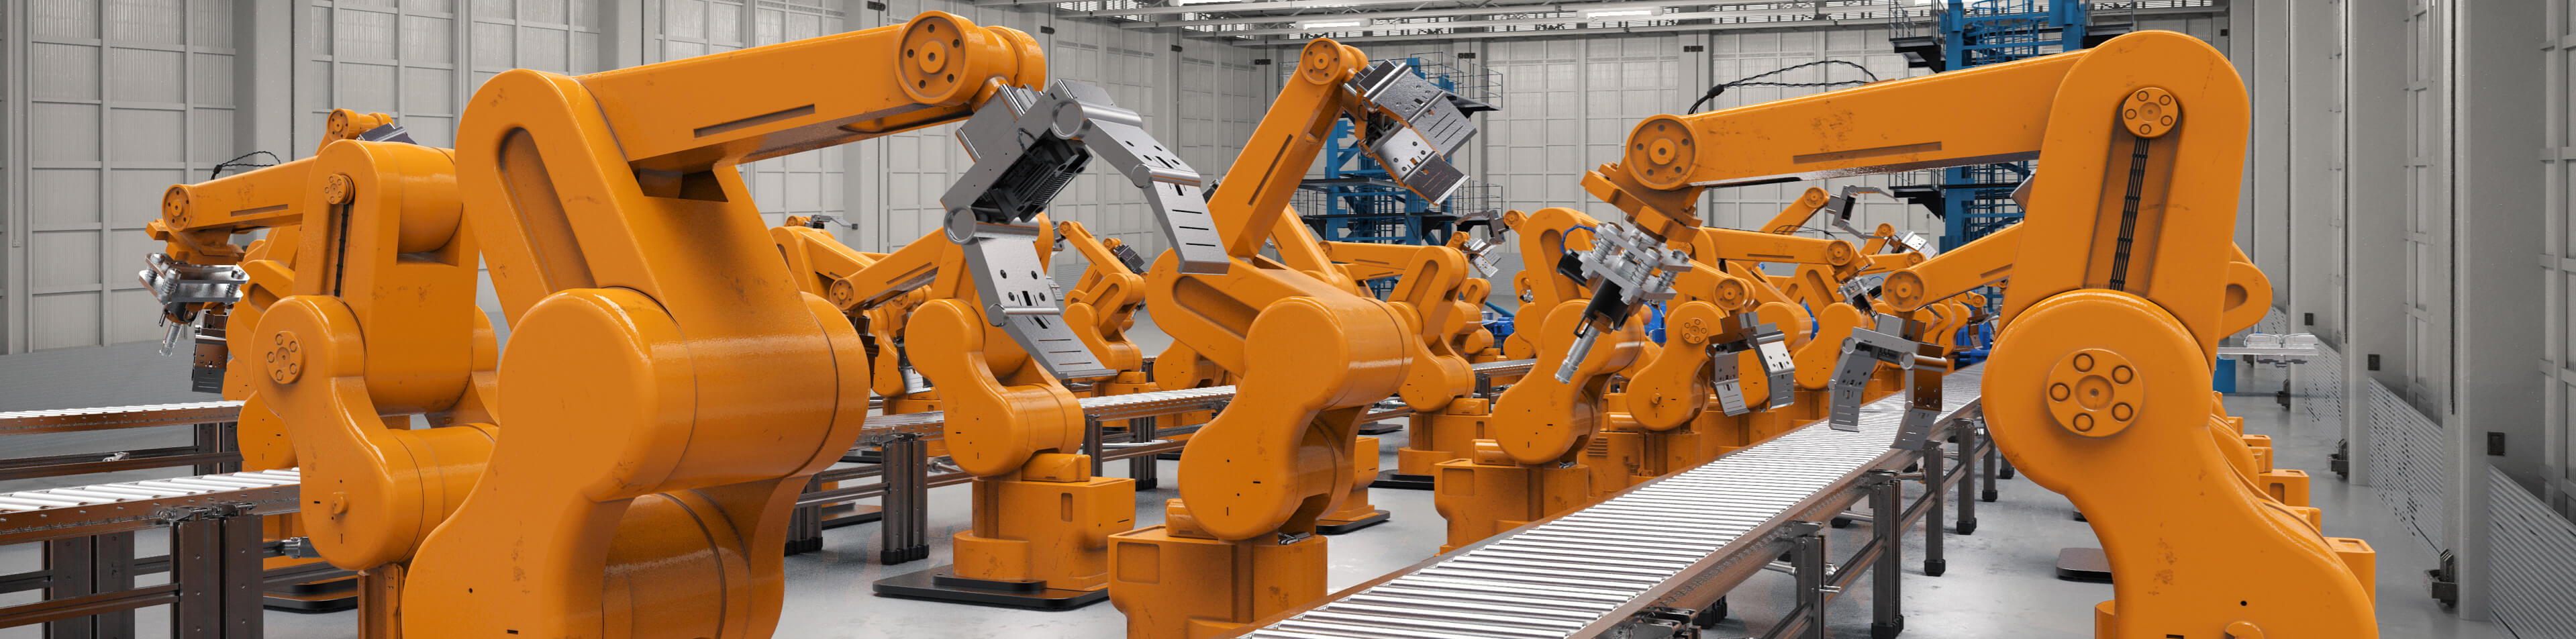 Assembly line with bright orange mechanical arms.